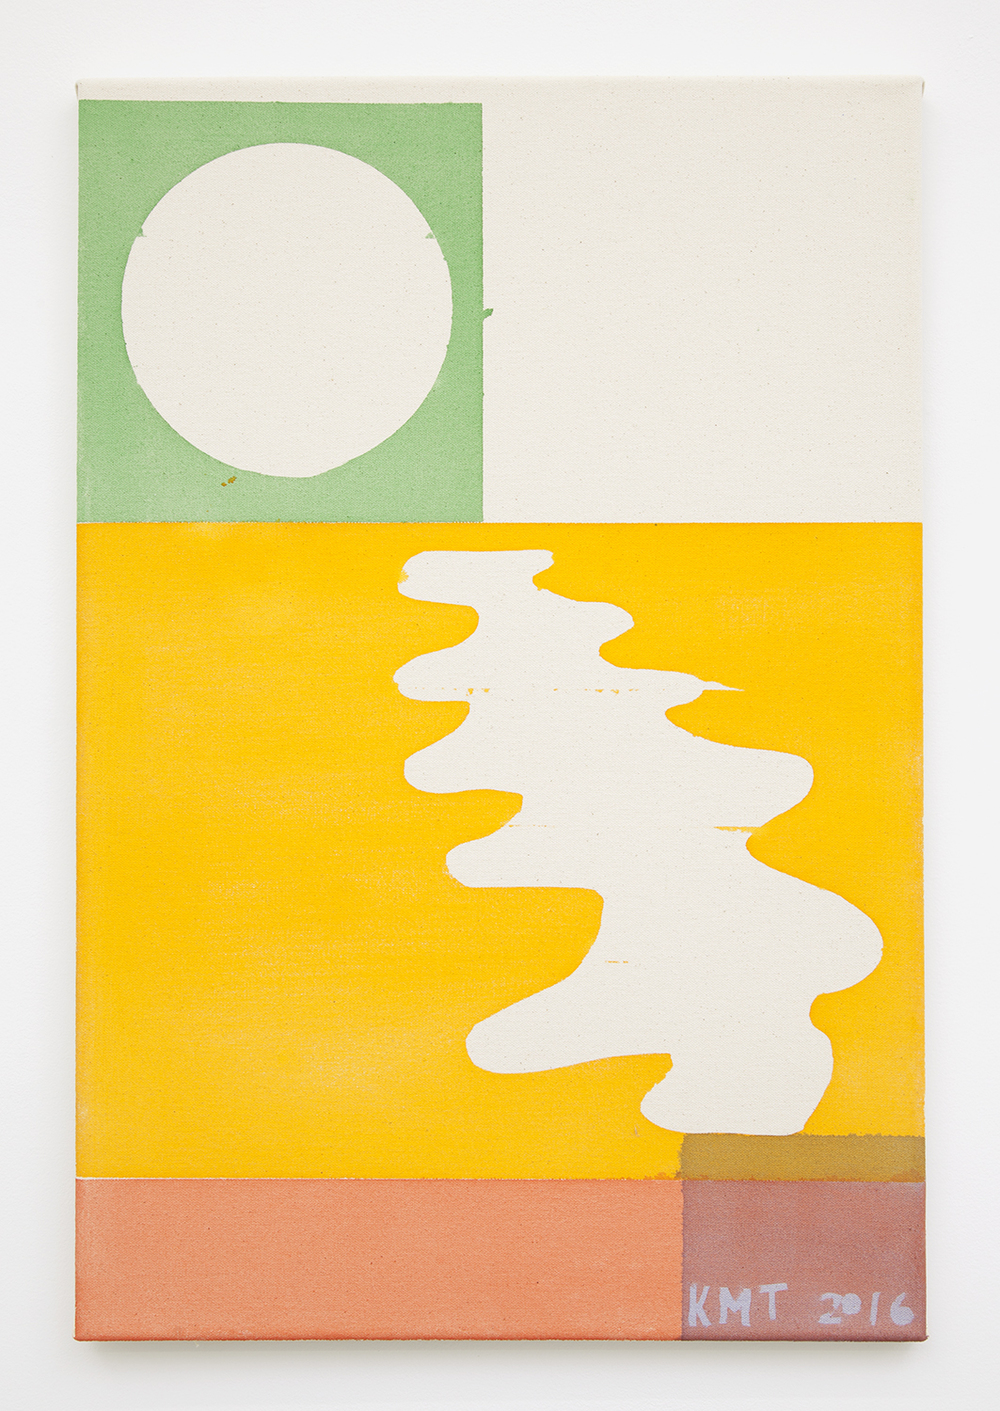 Kevin McNamee-Tweed  Green Sun Yellow Water Red Land , 2016 Pigment on raw canvas 22 x 16 inches